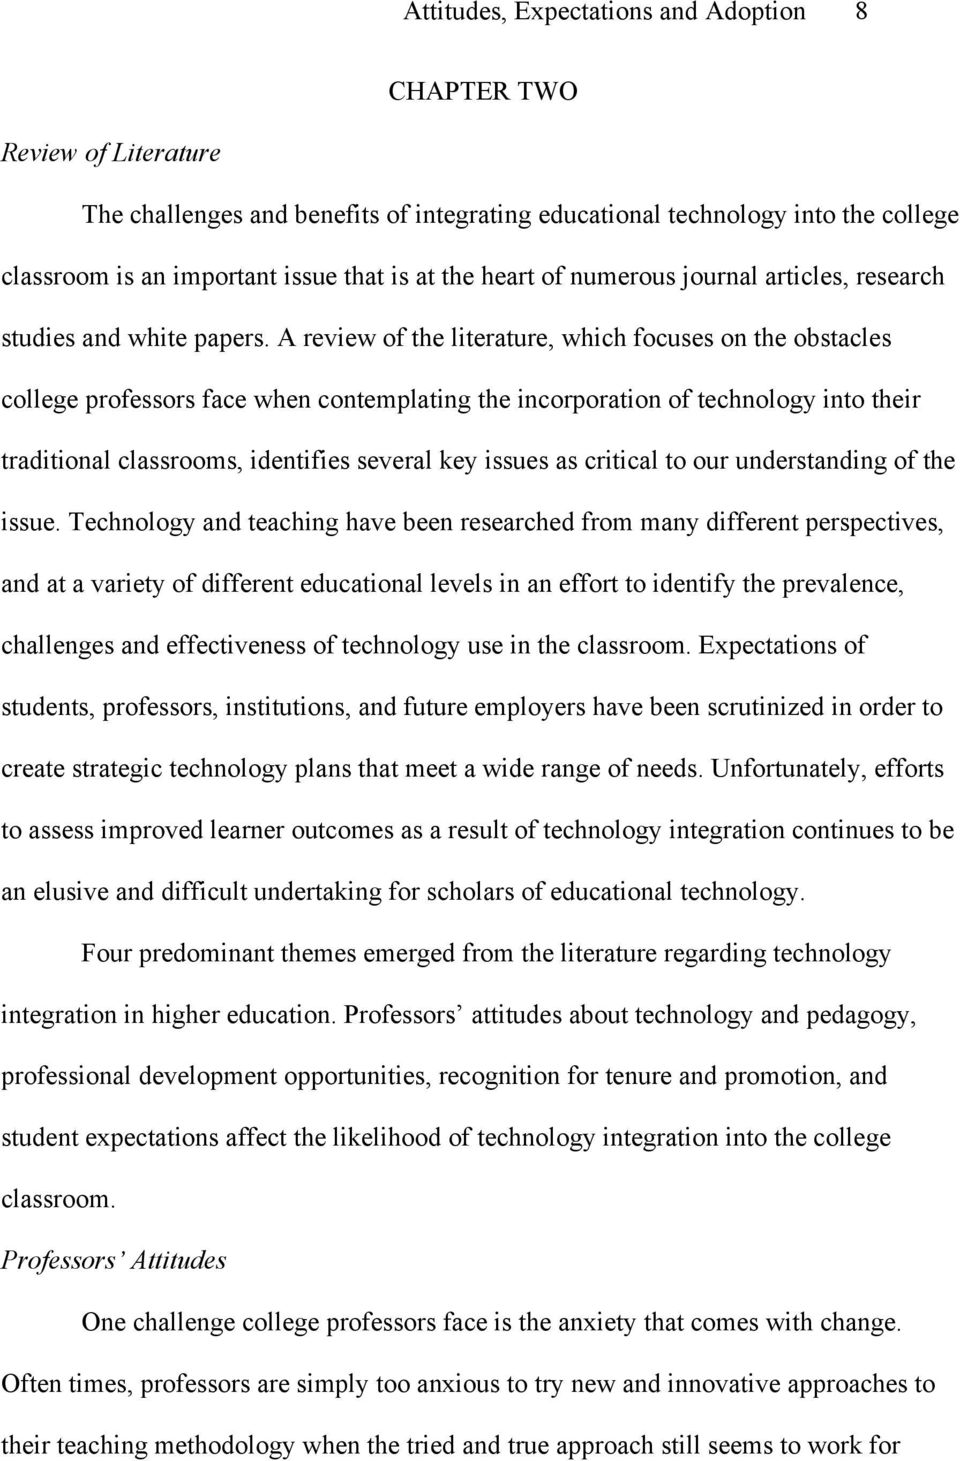 A review of the literature, which focuses on the obstacles college professors face when contemplating the incorporation of technology into their traditional classrooms, identifies several key issues